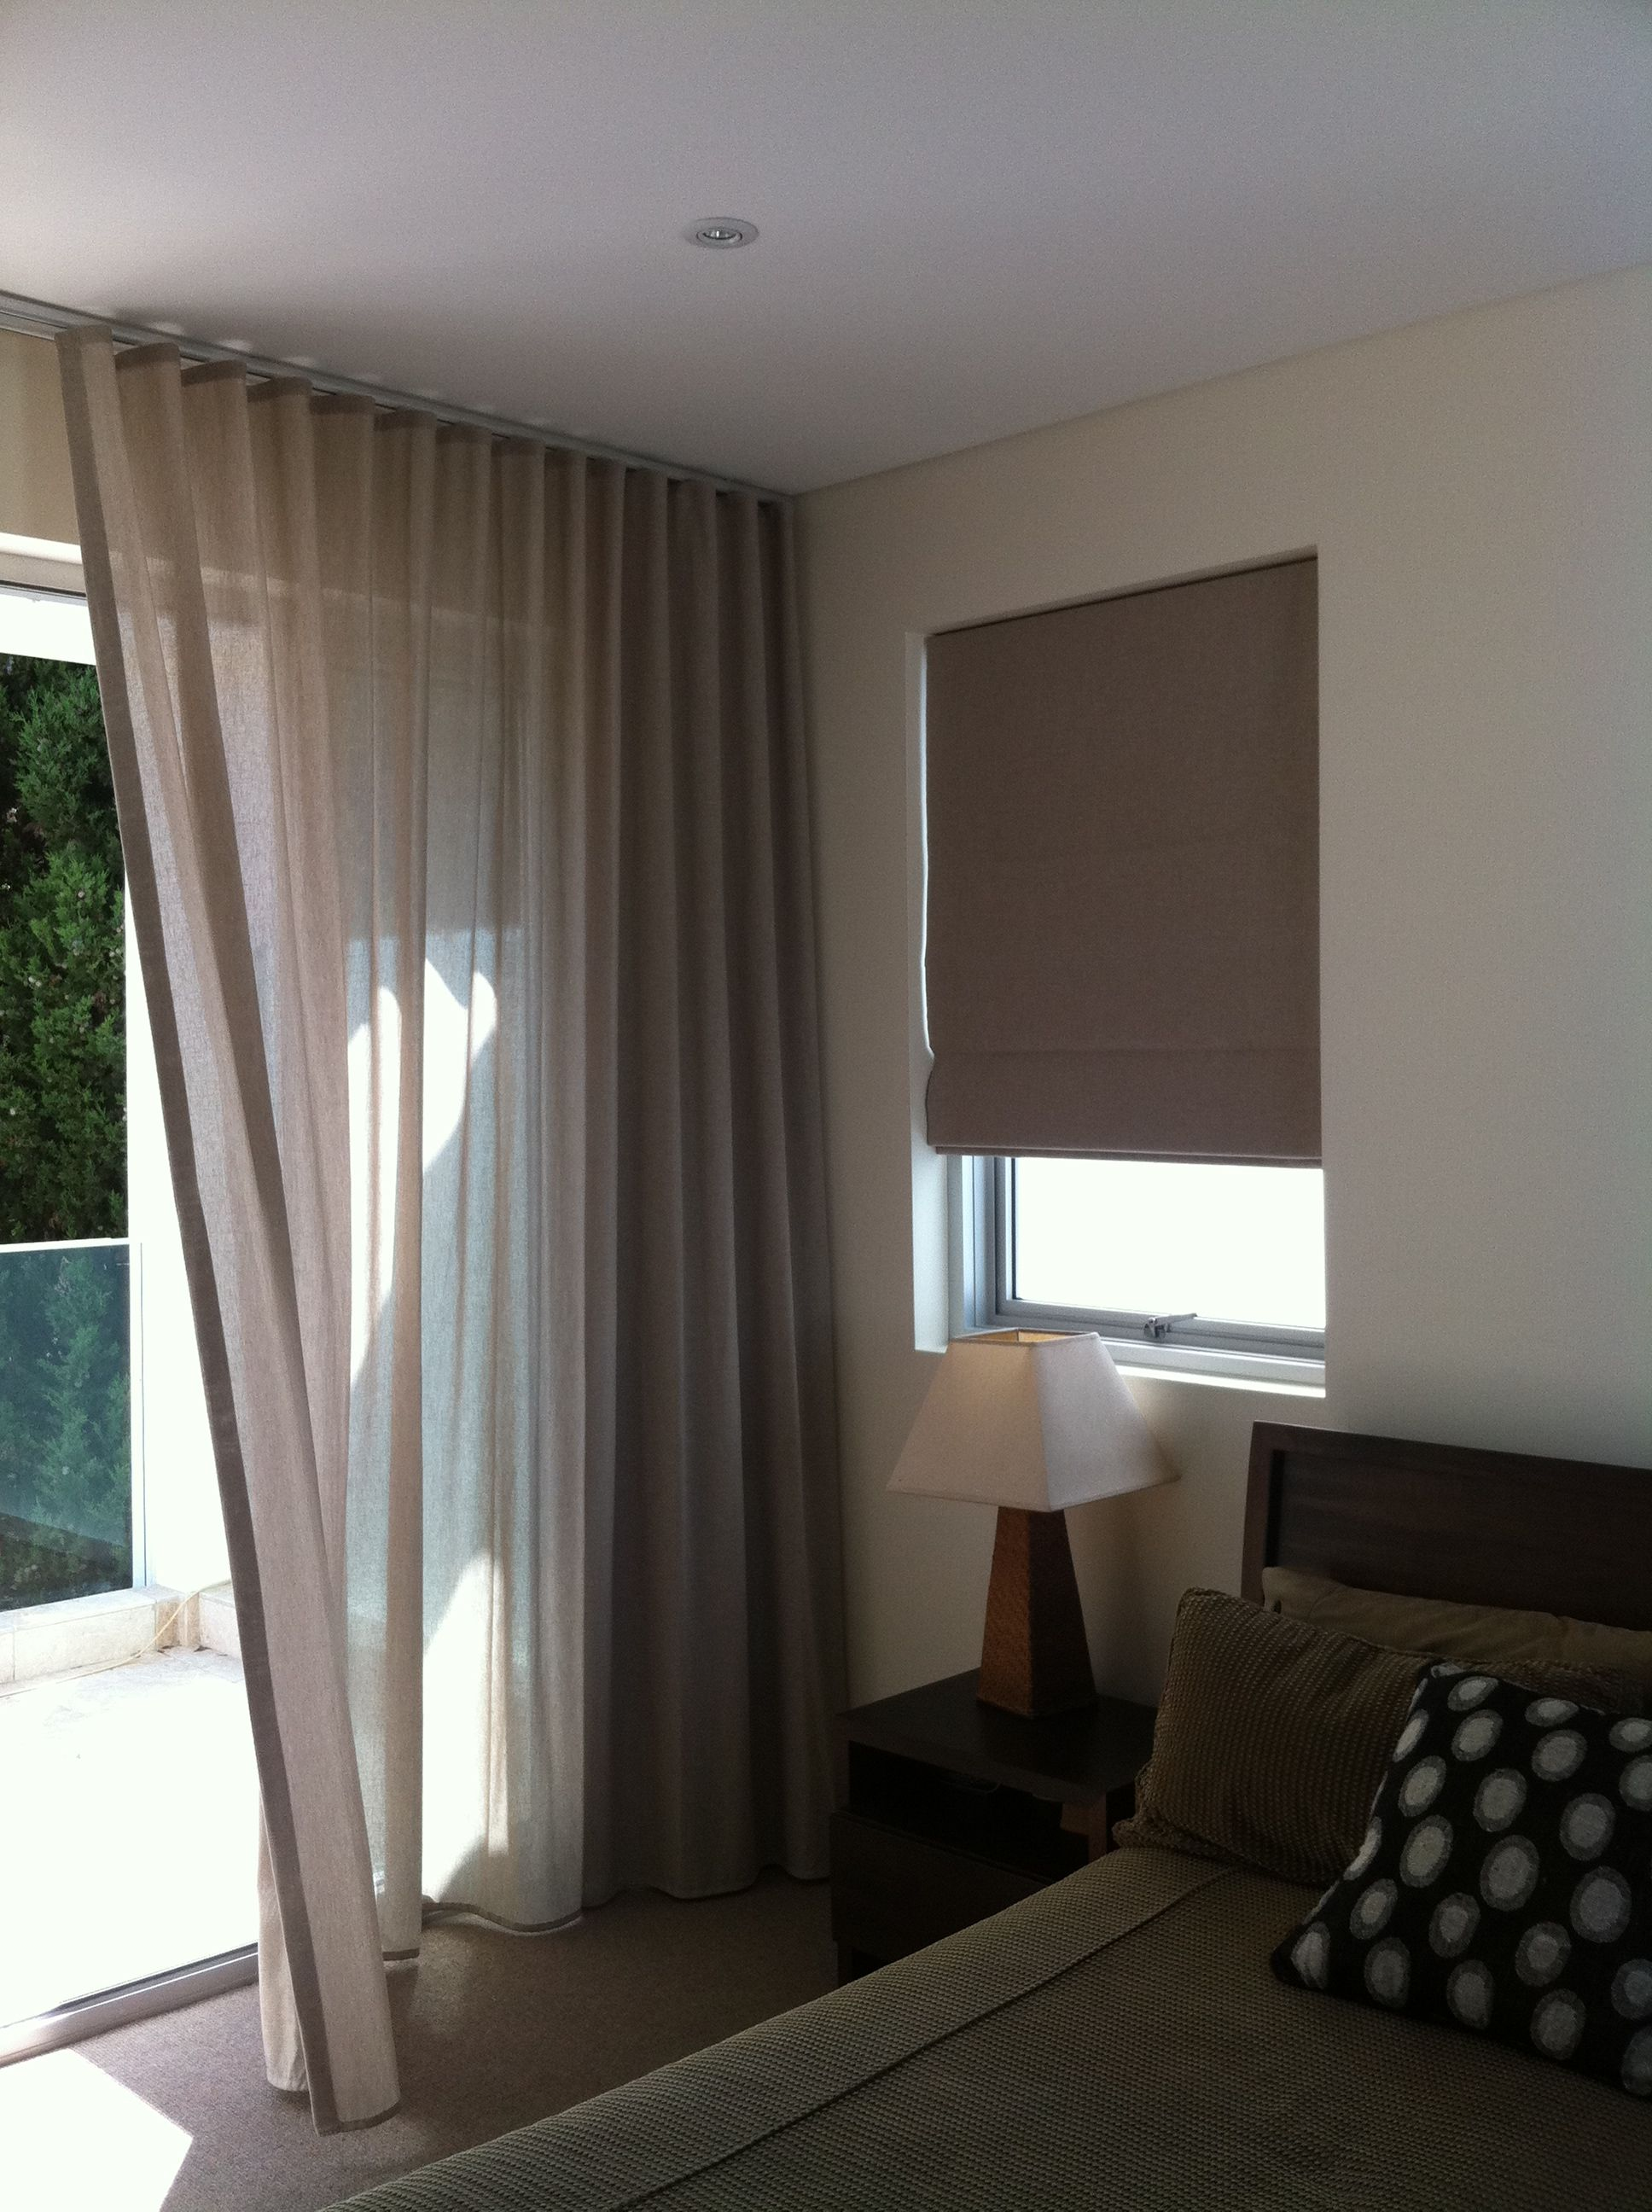 S Fold Sheer Curtain In Linen Blend Fabric With Coordinated